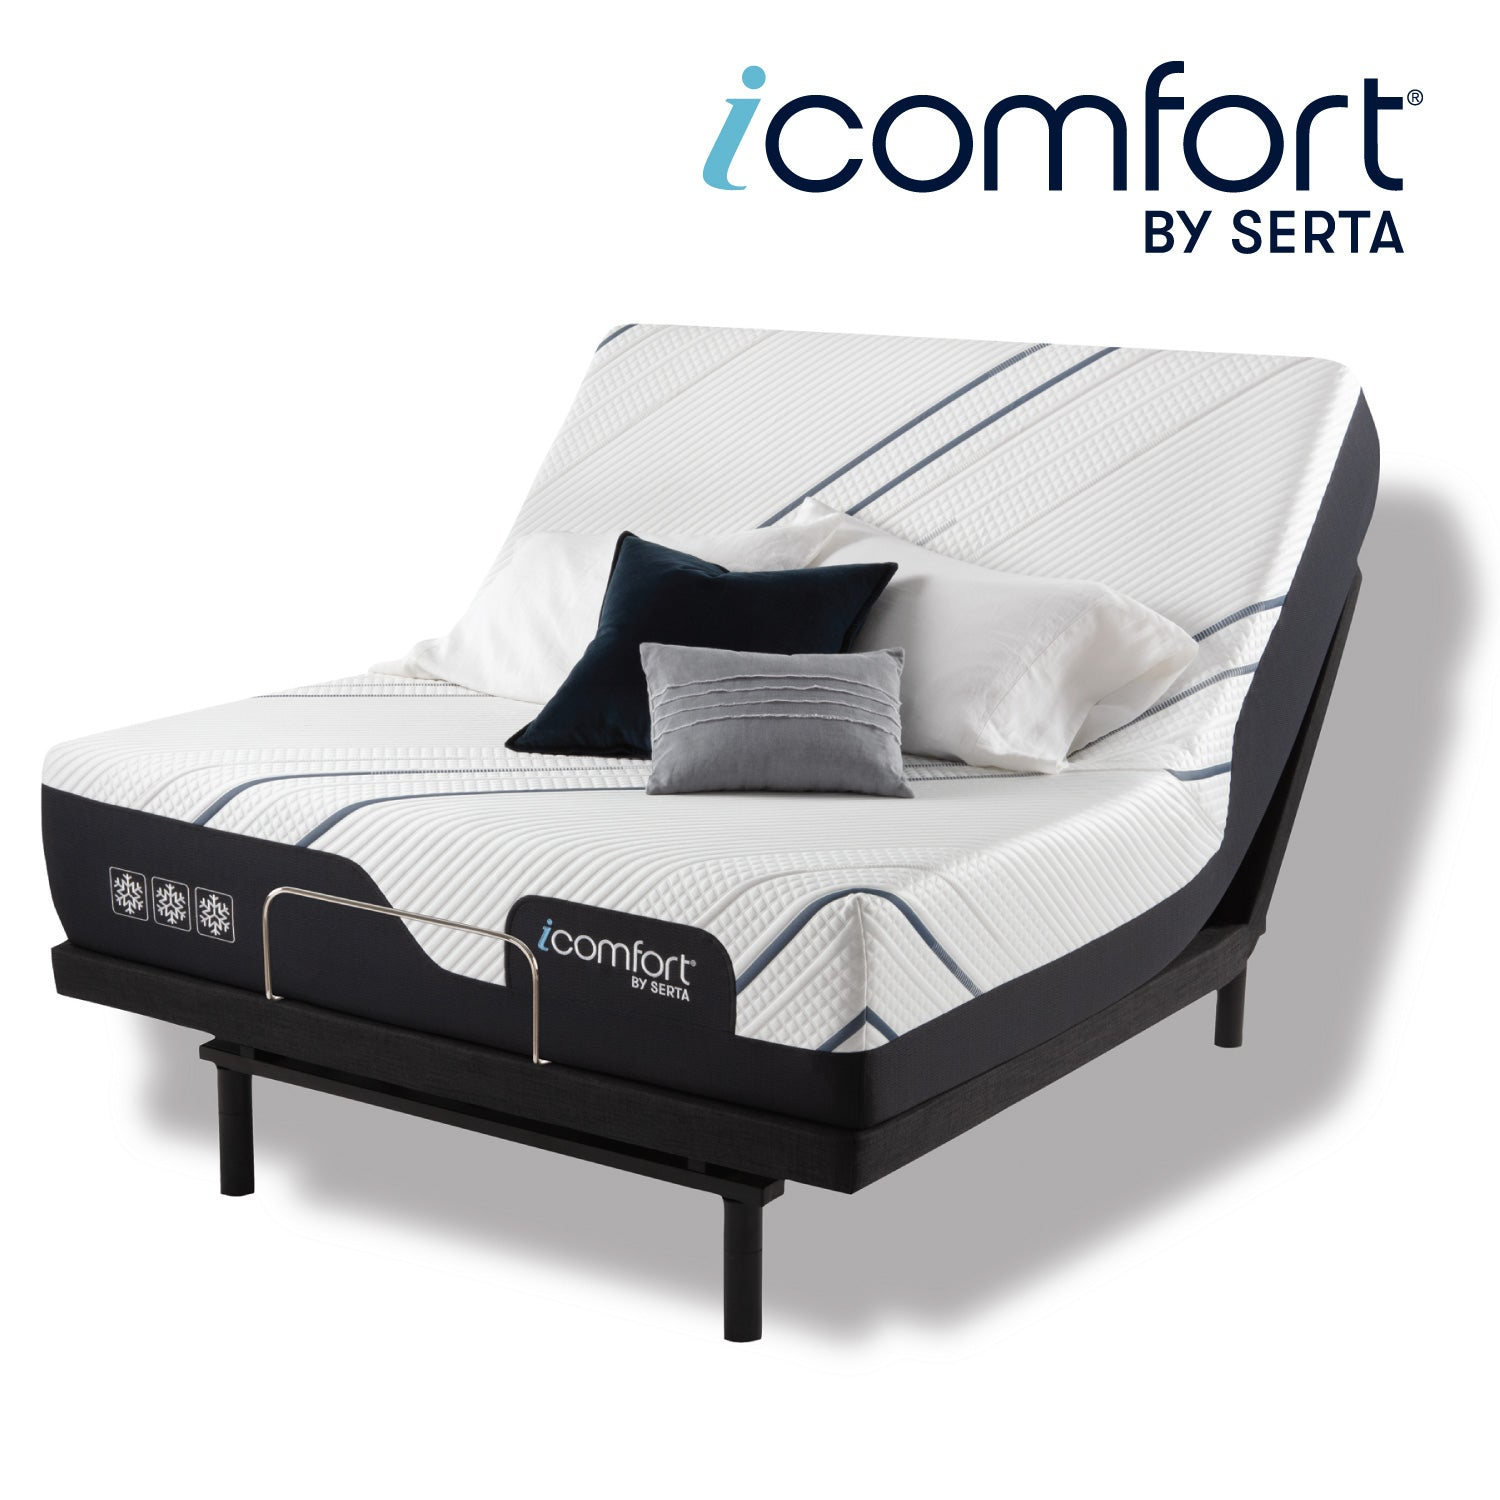 "Serta iComfort 12"" CF3000 Medium Memory Foam Mattress"